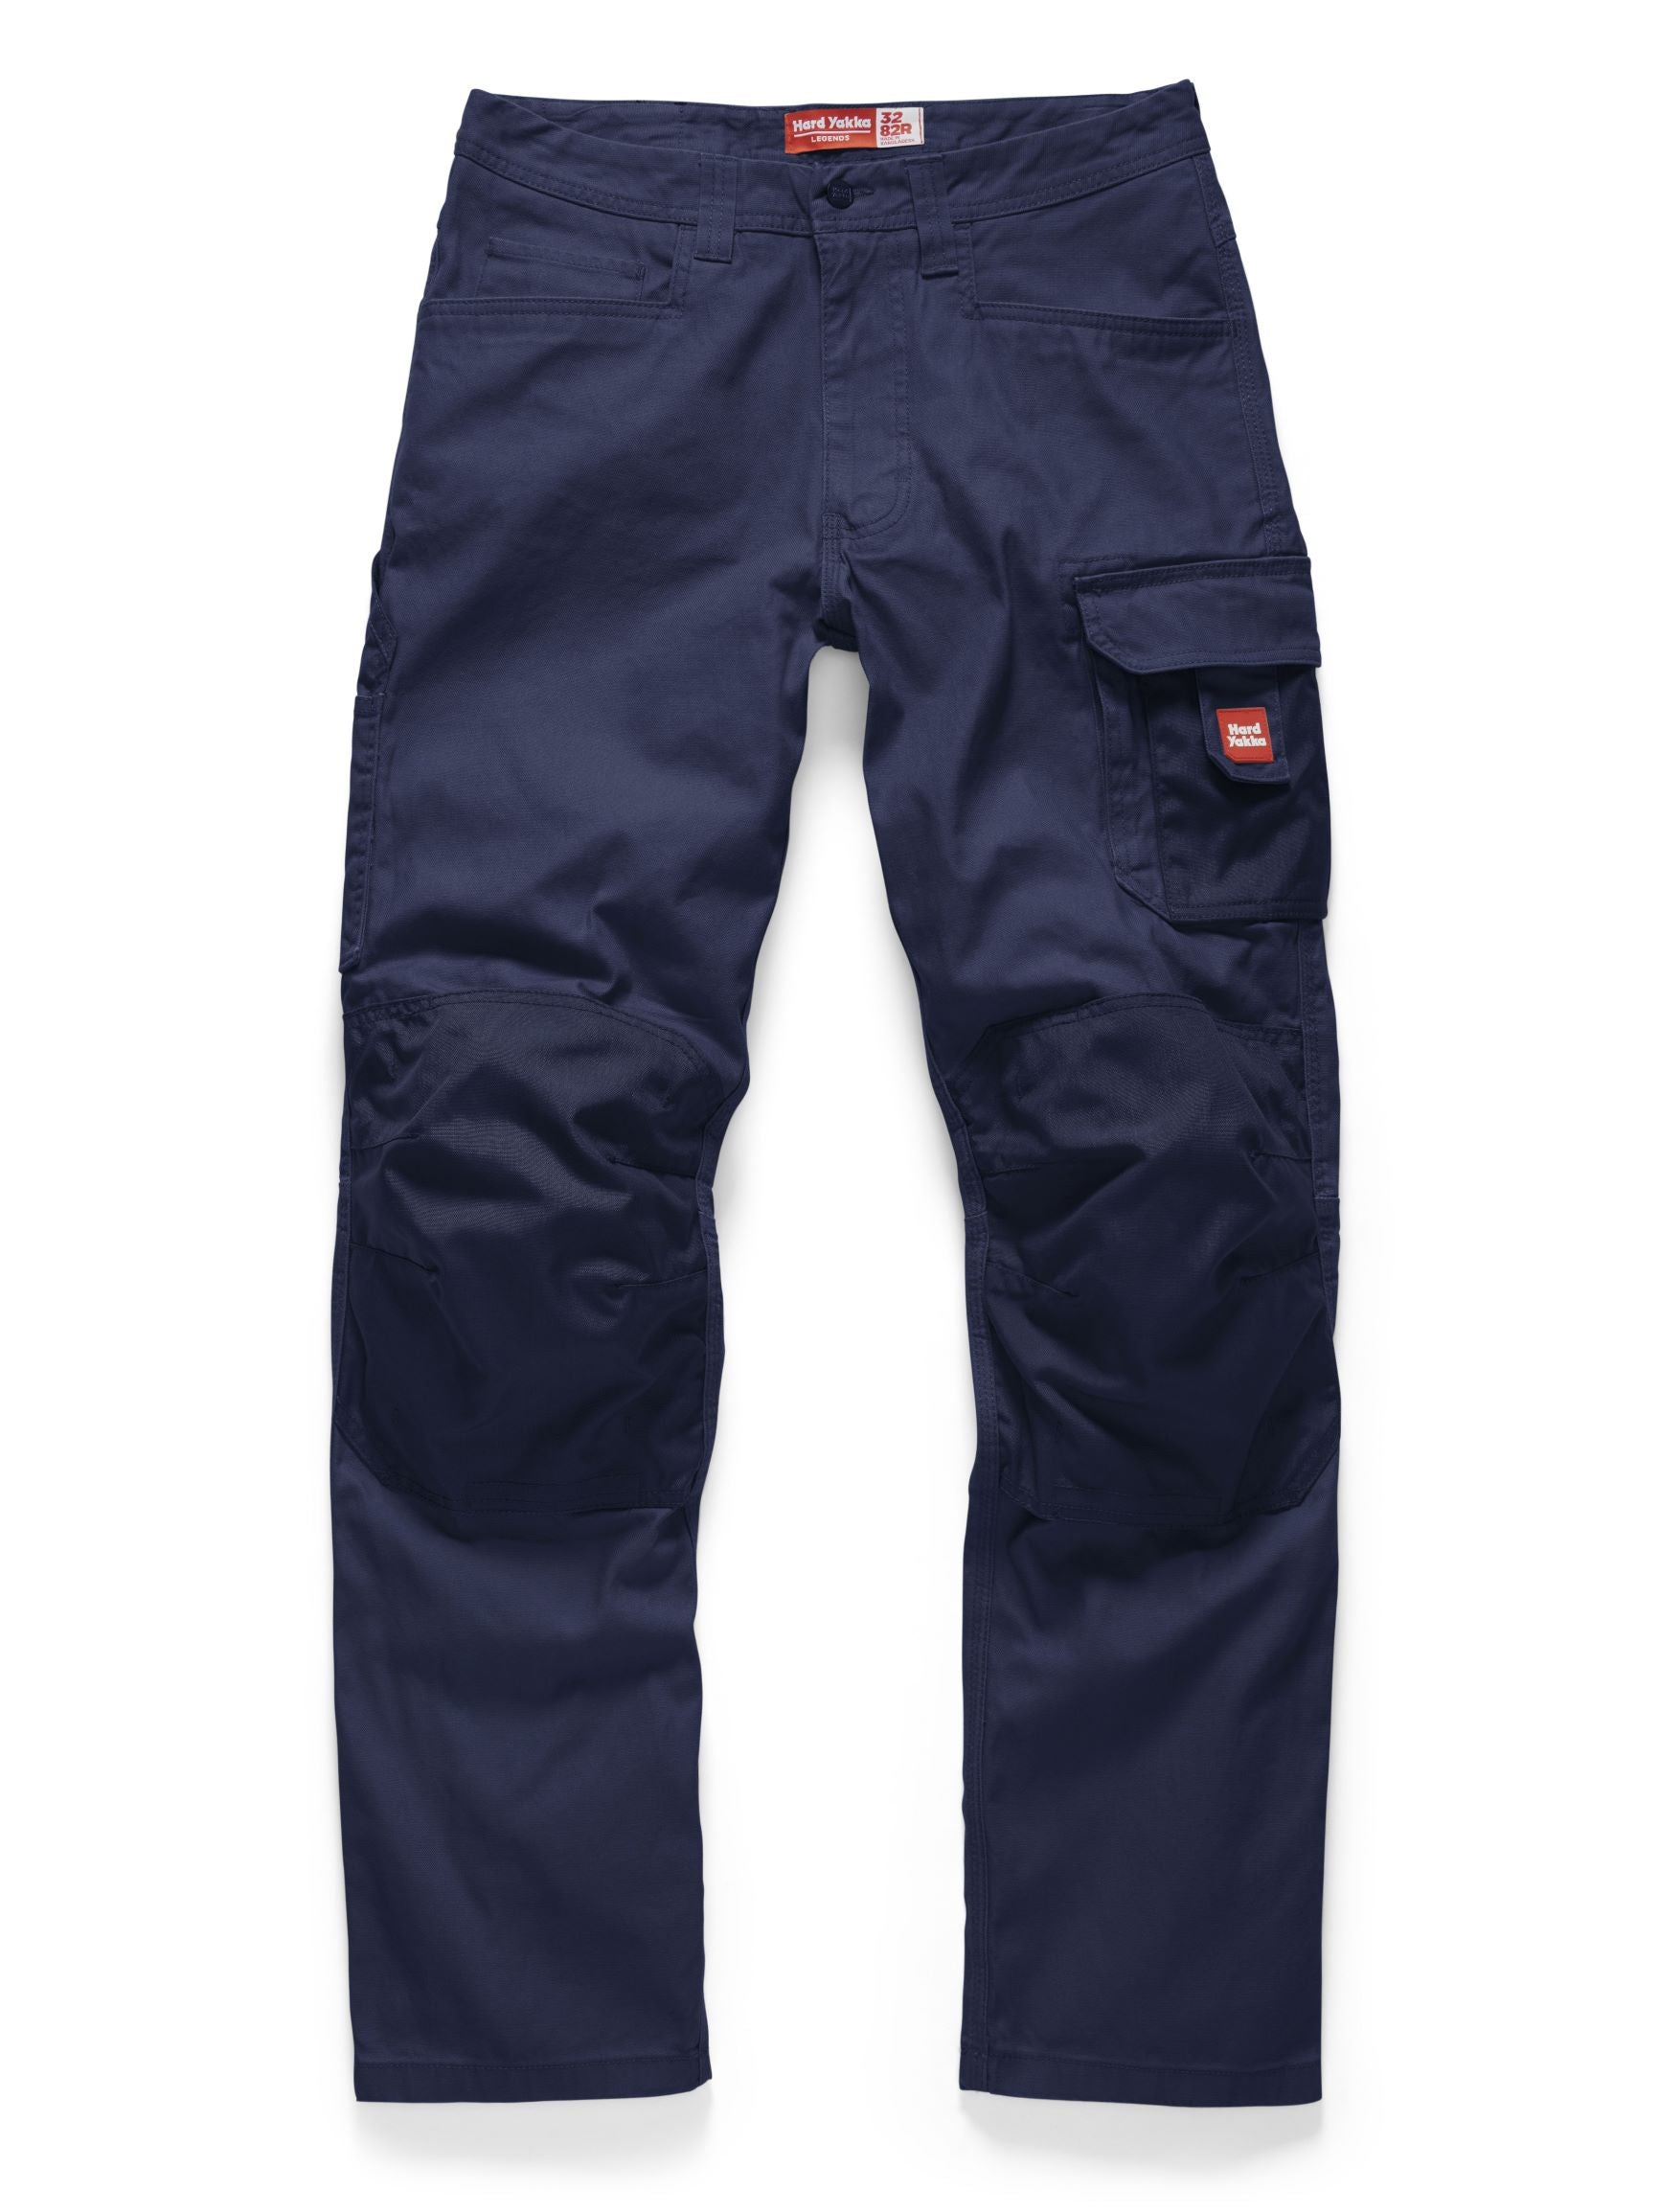 Legends Cargo Pants